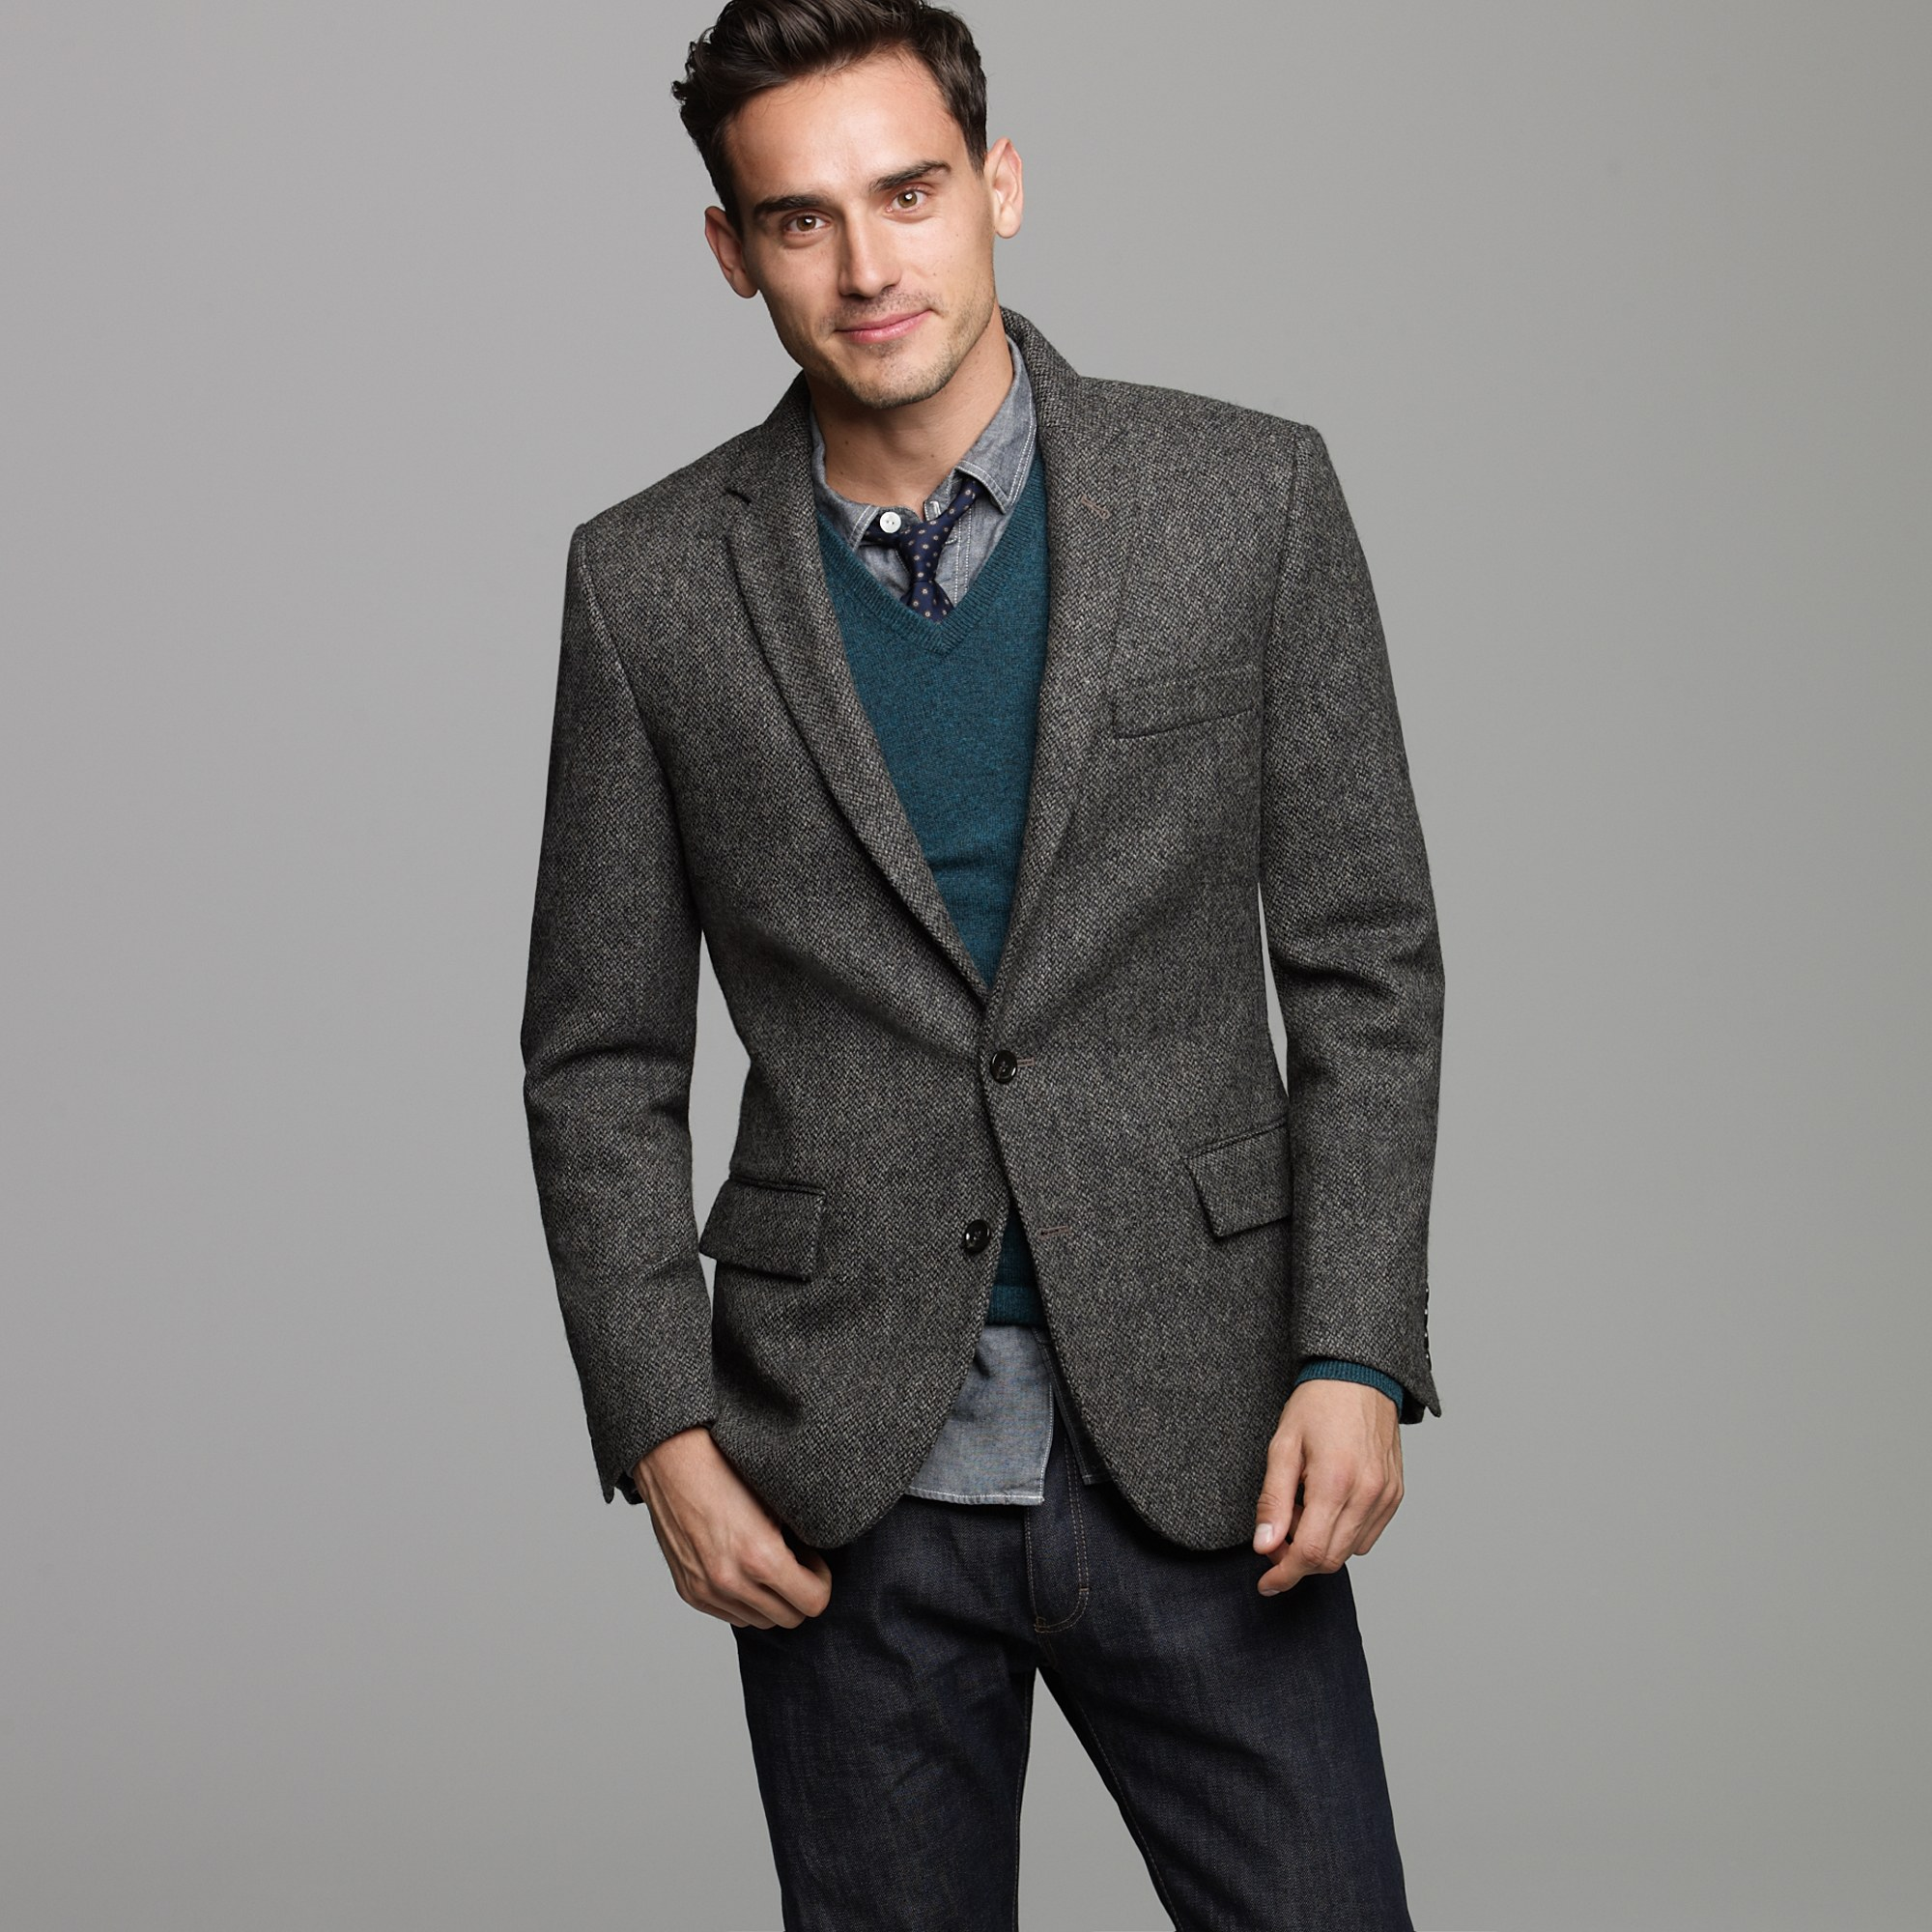 J.crew Harrington Birds-eye Tweed Sportcoat in Ludlow Fit in Gray